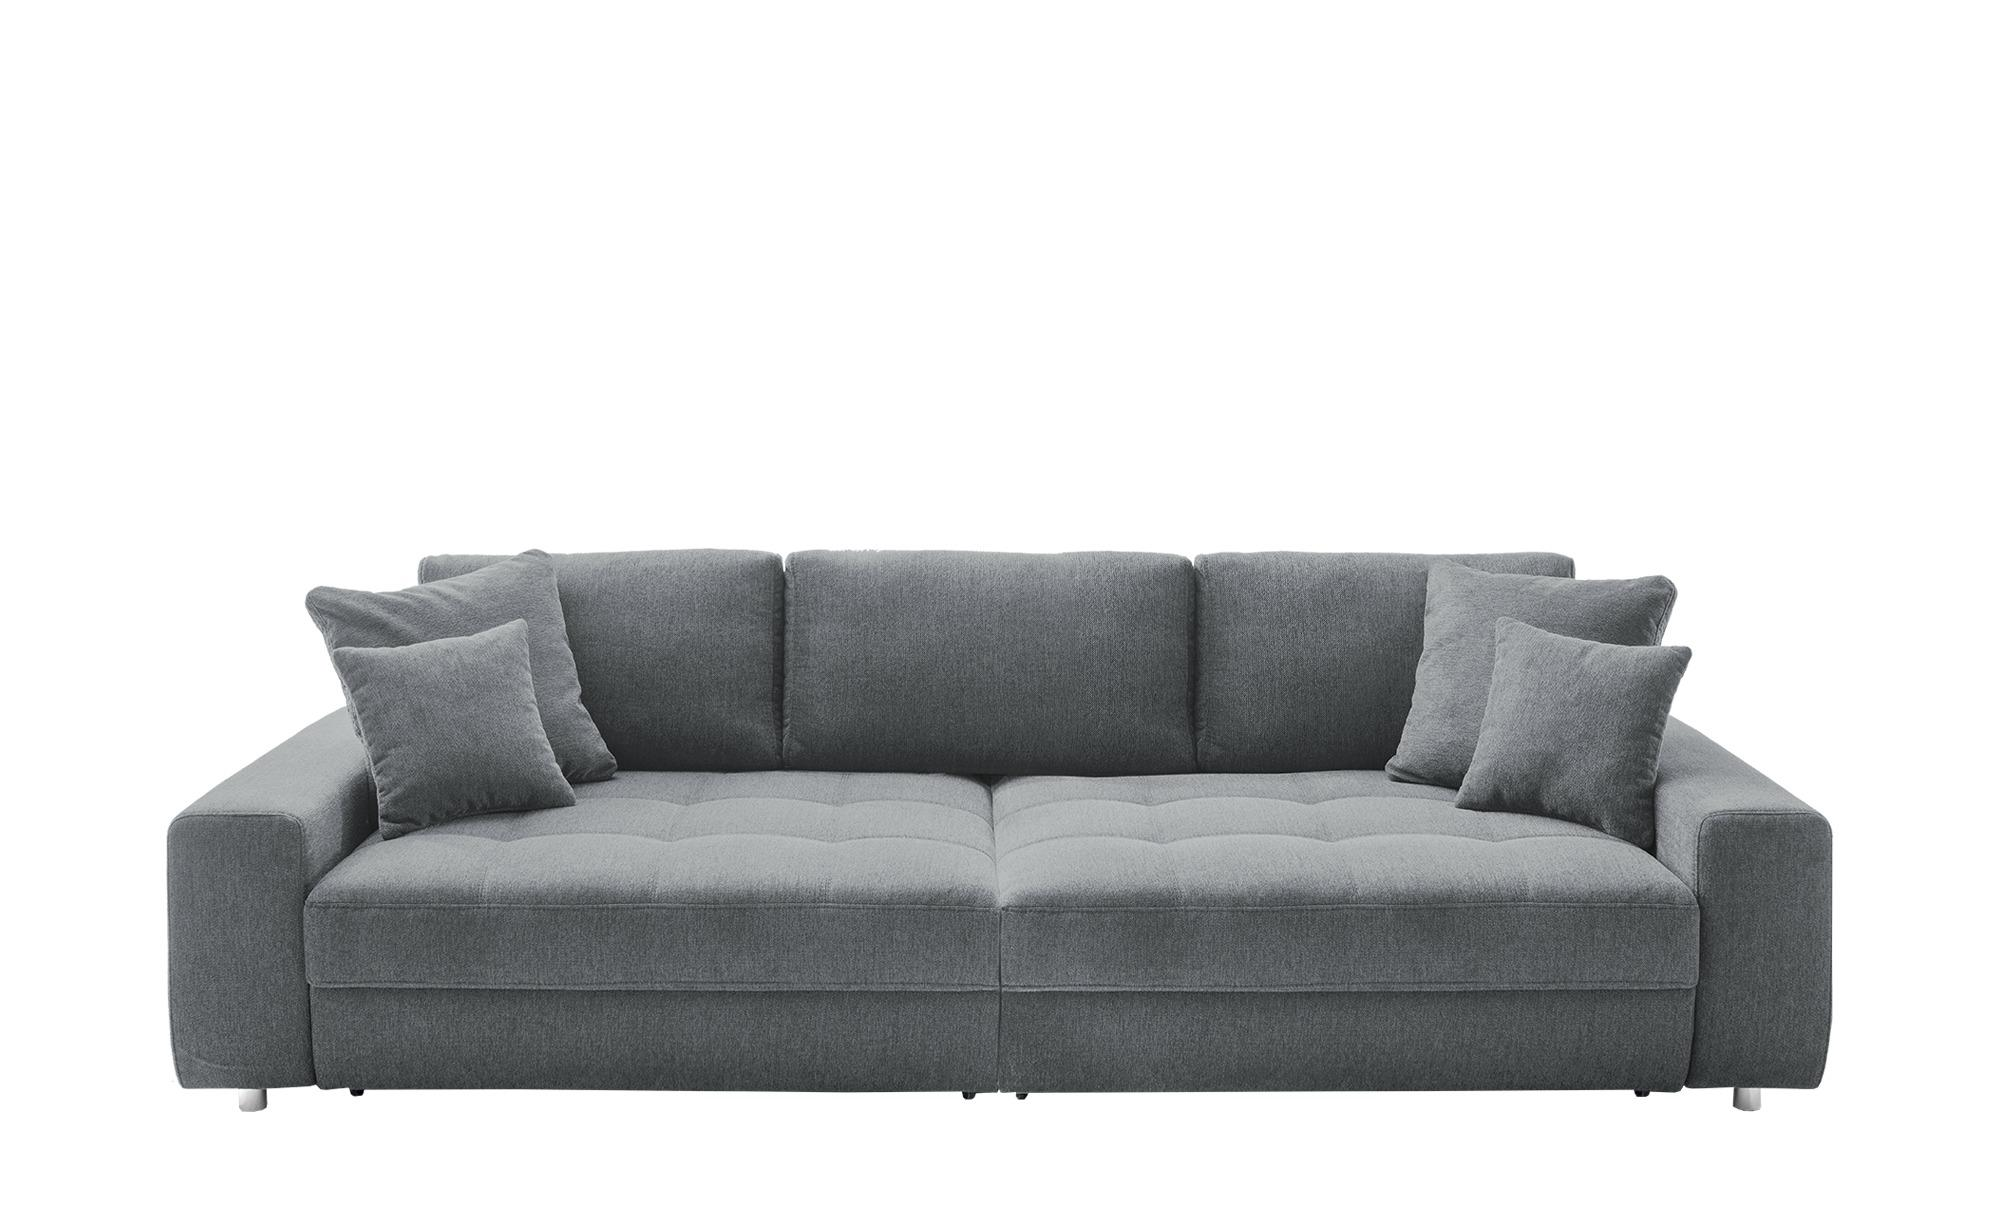 Höffner Big Sofa Grau